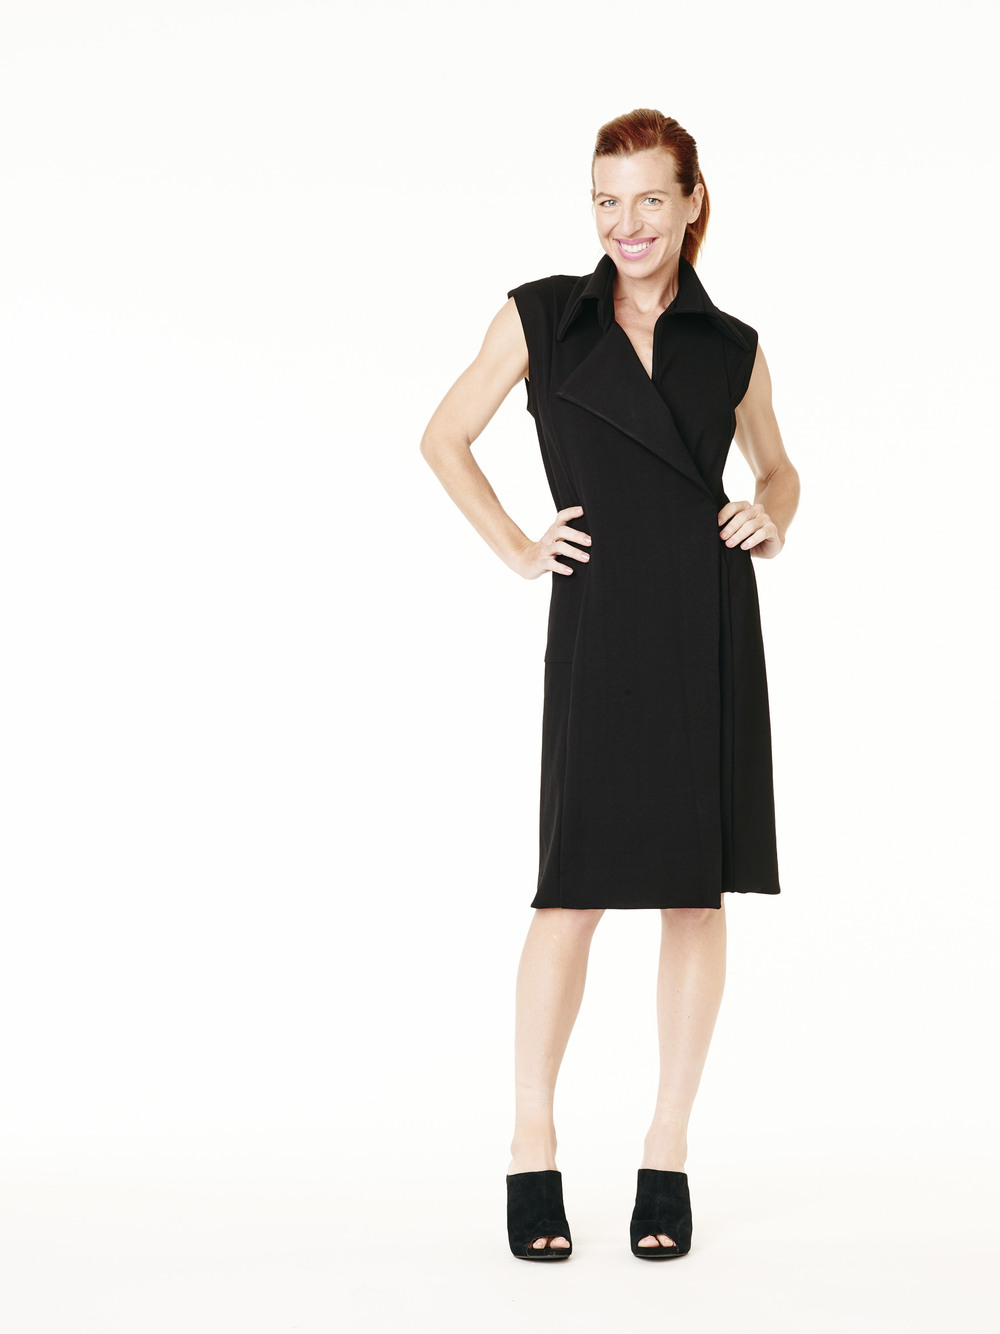 Camilla Olson 2-11-15 02_Cate_Vest_Shirt_Dress_0091.jpg